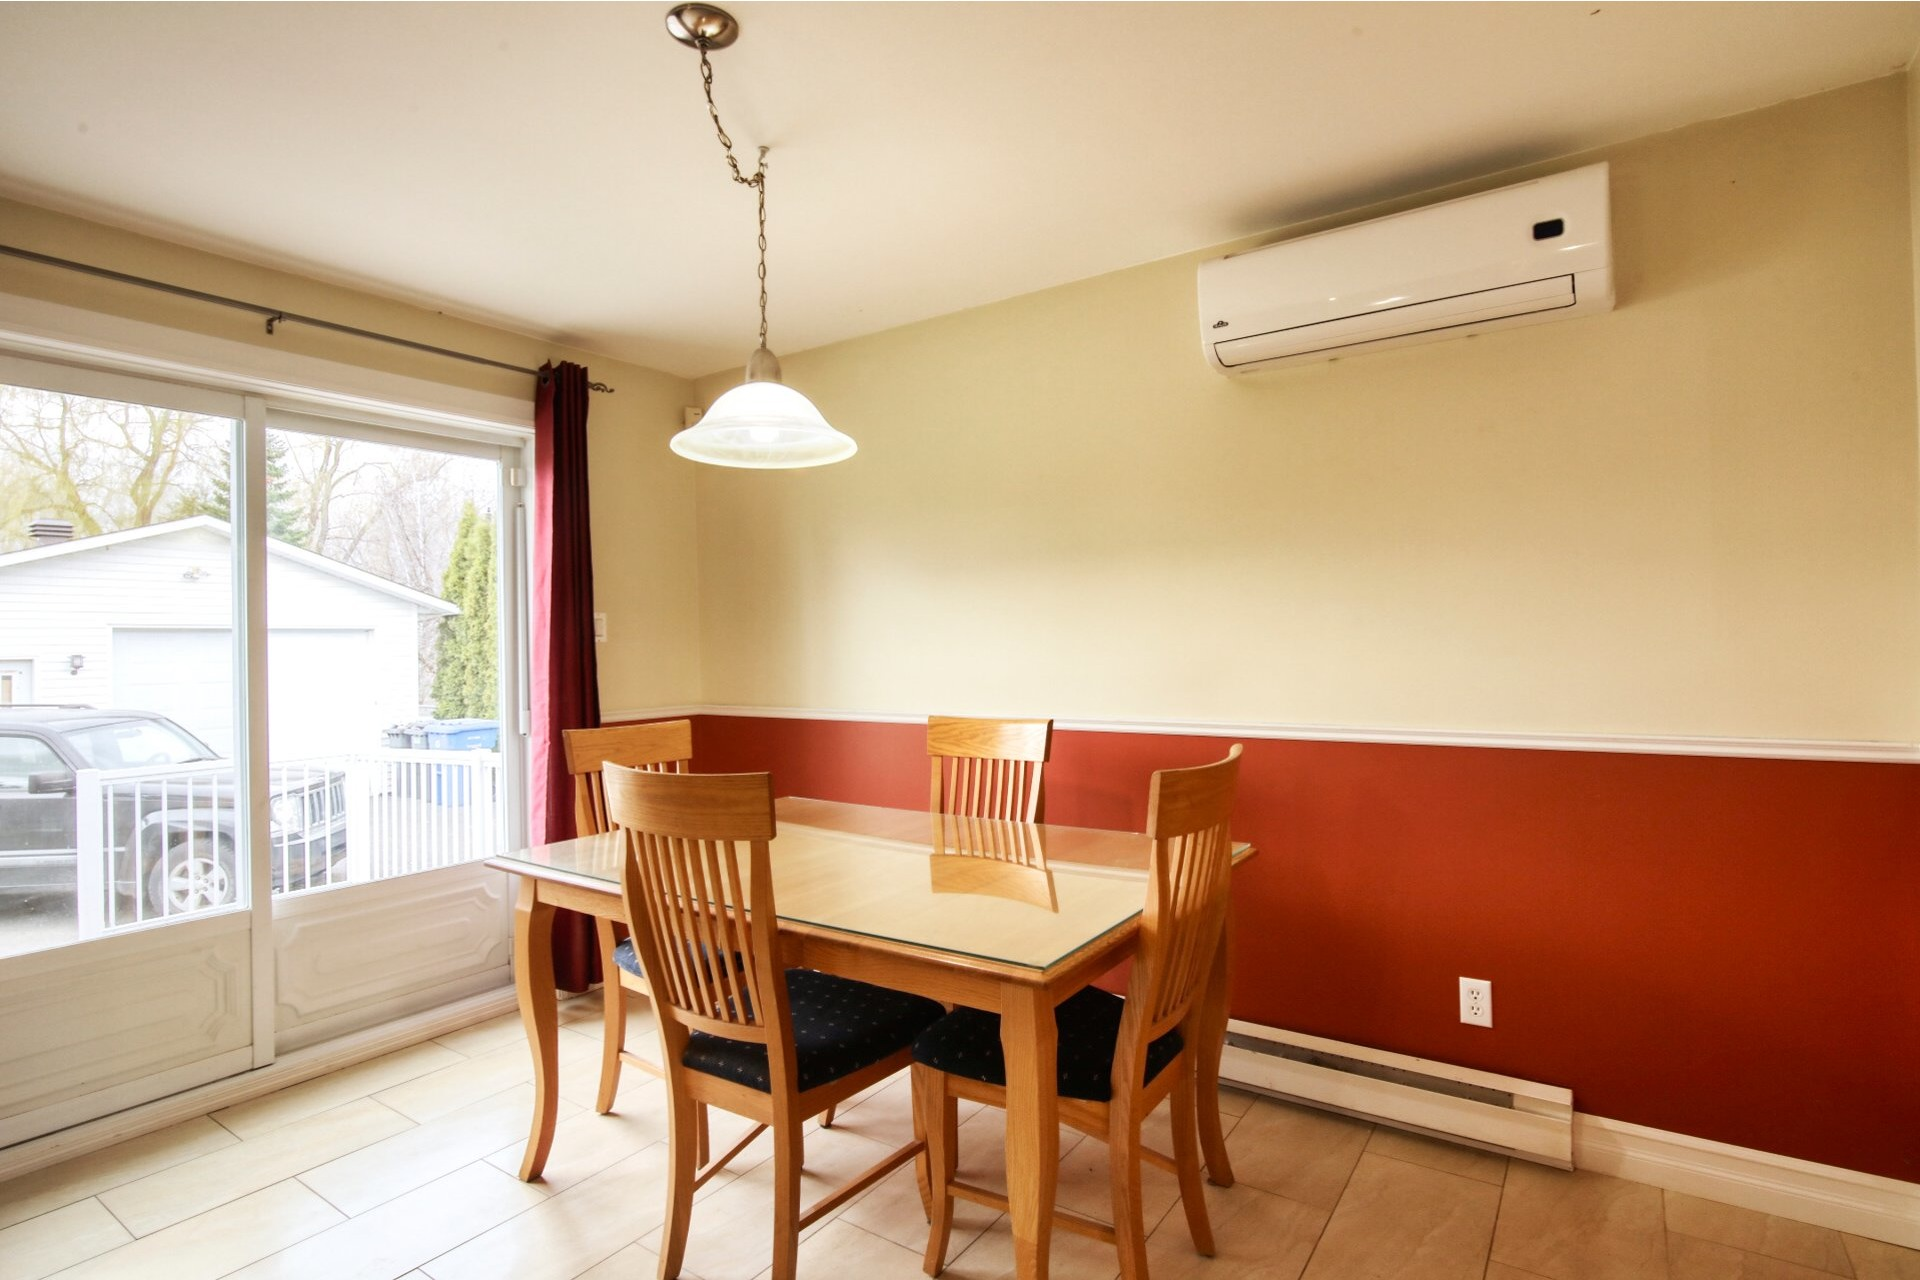 image 7 - House For sale Saint-Hubert Longueuil  - 13 rooms